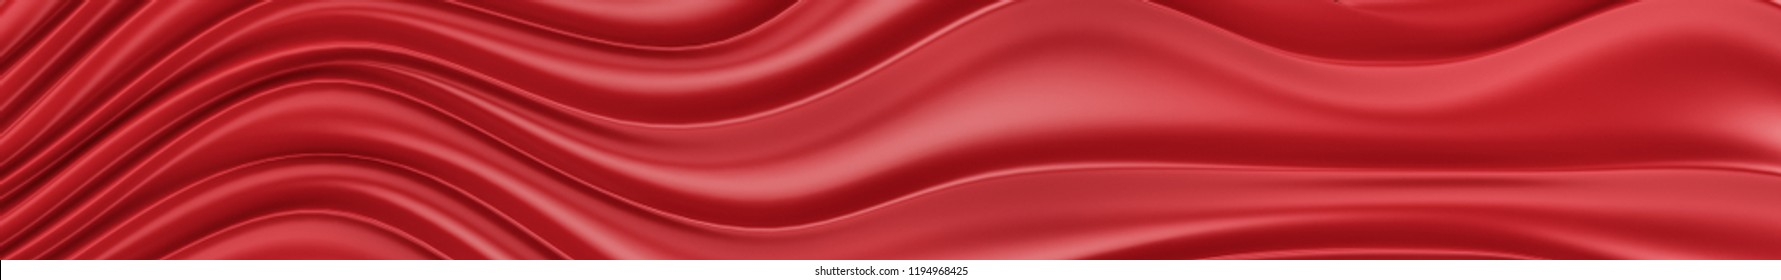 Red texture of a fabric satin. Gorizontal panoramic view for kithen panel skinali. 3d rendering